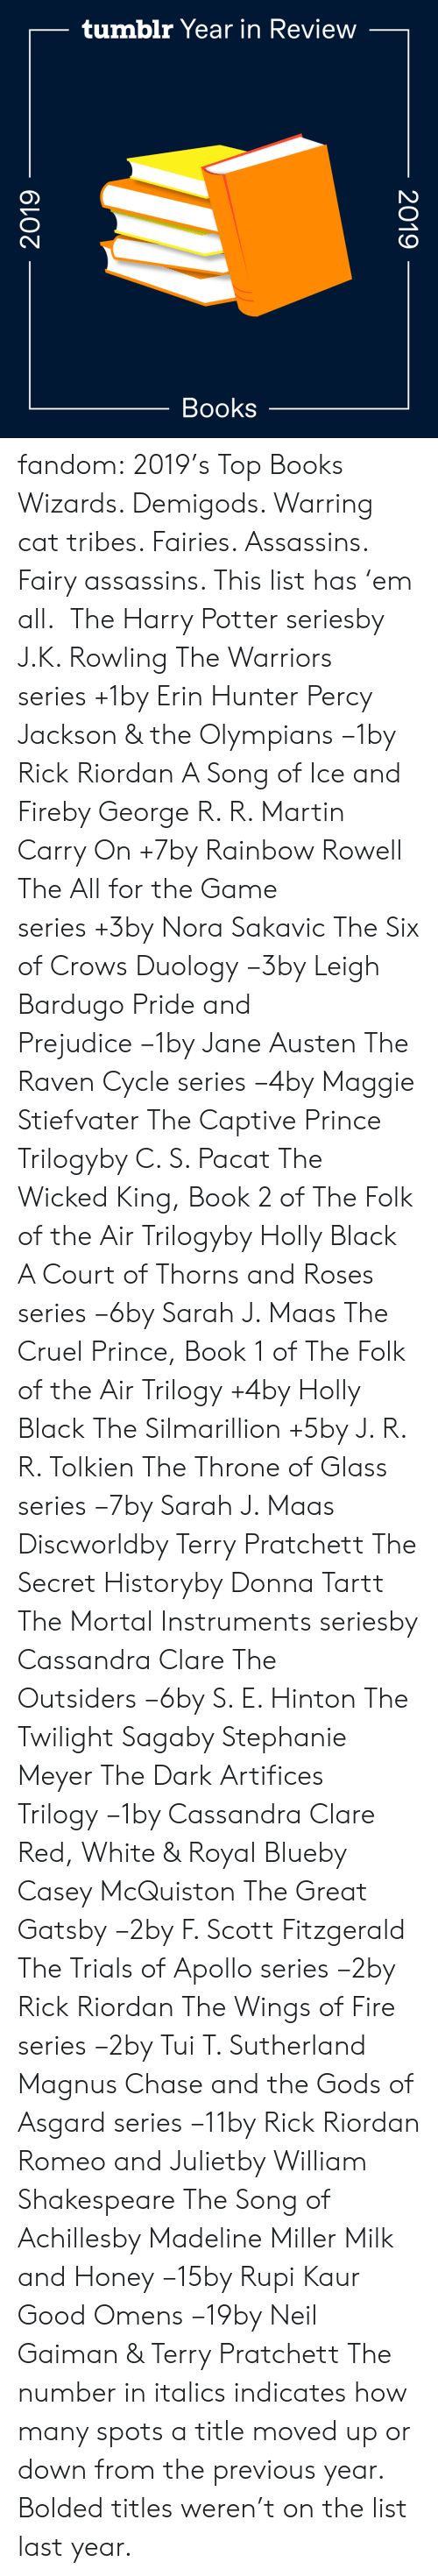 miller: tumblr Year in Review  Books  2019  2019 fandom:  2019's Top Books  Wizards. Demigods. Warring cat tribes. Fairies. Assassins. Fairy assassins. This list has 'em all.   The Harry Potter seriesby J.K. Rowling  The Warriors series +1by Erin Hunter  Percy Jackson & the Olympians −1by Rick Riordan  A Song of Ice and Fireby George R. R. Martin  Carry On +7by Rainbow Rowell  The All for the Game series +3by Nora Sakavic  The Six of Crows Duology −3by Leigh Bardugo  Pride and Prejudice −1by Jane Austen  The Raven Cycle series −4by Maggie Stiefvater  The Captive Prince Trilogyby C. S. Pacat  The Wicked King, Book 2 of The Folk of the Air Trilogyby Holly Black  A Court of Thorns and Roses series −6by Sarah J. Maas  The Cruel Prince, Book 1 of The Folk of the Air Trilogy +4by Holly Black  The Silmarillion +5by J. R. R. Tolkien  The Throne of Glass series −7by Sarah J. Maas  Discworldby Terry Pratchett  The Secret Historyby Donna Tartt  The Mortal Instruments seriesby Cassandra Clare  The Outsiders −6by S. E. Hinton  The Twilight Sagaby Stephanie Meyer  The Dark Artifices Trilogy −1by Cassandra Clare  Red, White & Royal Blueby Casey McQuiston  The Great Gatsby −2by F. Scott Fitzgerald  The Trials of Apollo series −2by Rick Riordan  The Wings of Fire series −2by Tui T. Sutherland  Magnus Chase and the Gods of Asgard series −11by Rick Riordan  Romeo and Julietby William Shakespeare  The Song of Achillesby Madeline Miller  Milk and Honey −15by Rupi Kaur  Good Omens −19by Neil Gaiman & Terry Pratchett The number in italics indicates how many spots a title moved up or down from the previous year. Bolded titles weren't on the list last year.